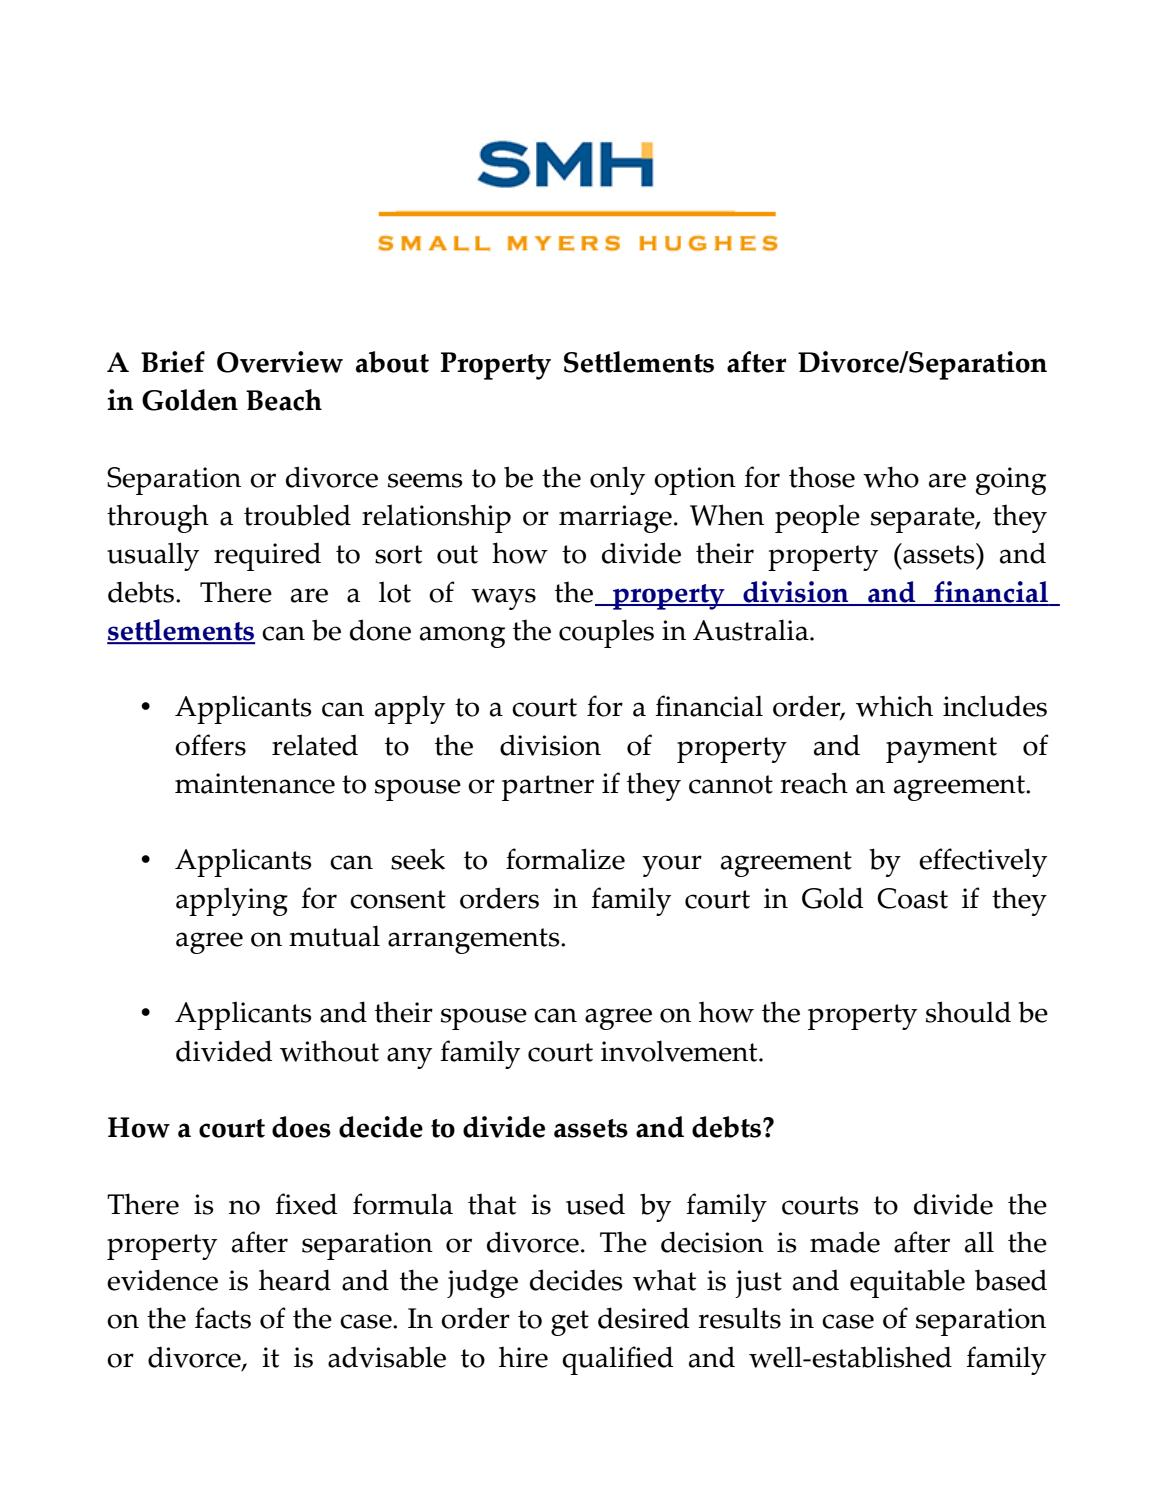 A Brief Overview About Property Settlements After Divorceseparation